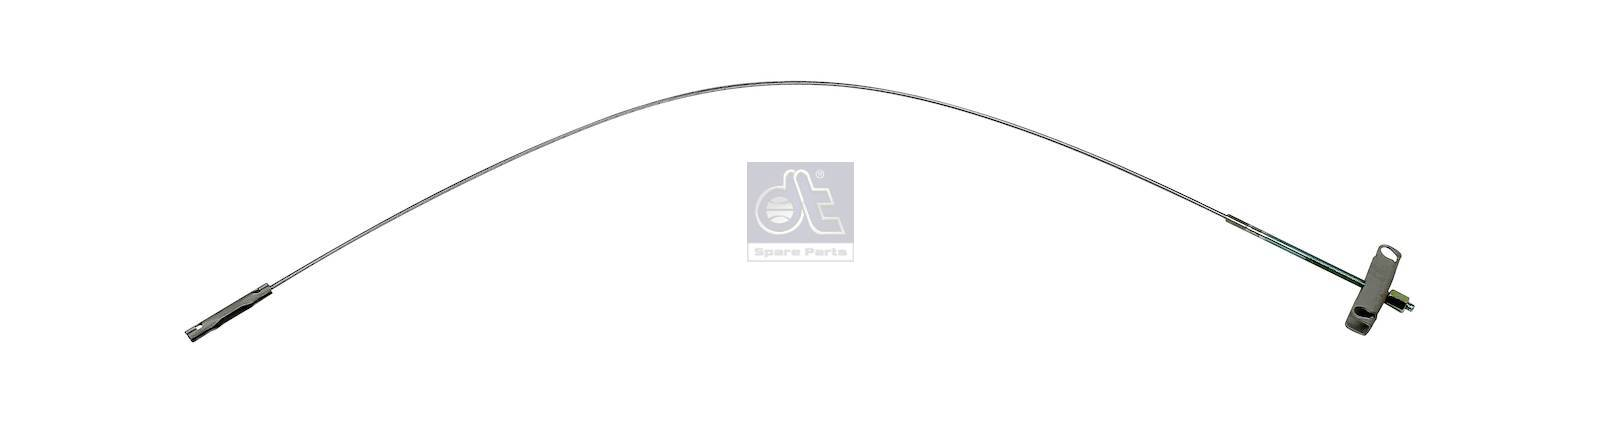 DT 13 33021 Control wire, parking brake suitable for Fiat, Ford